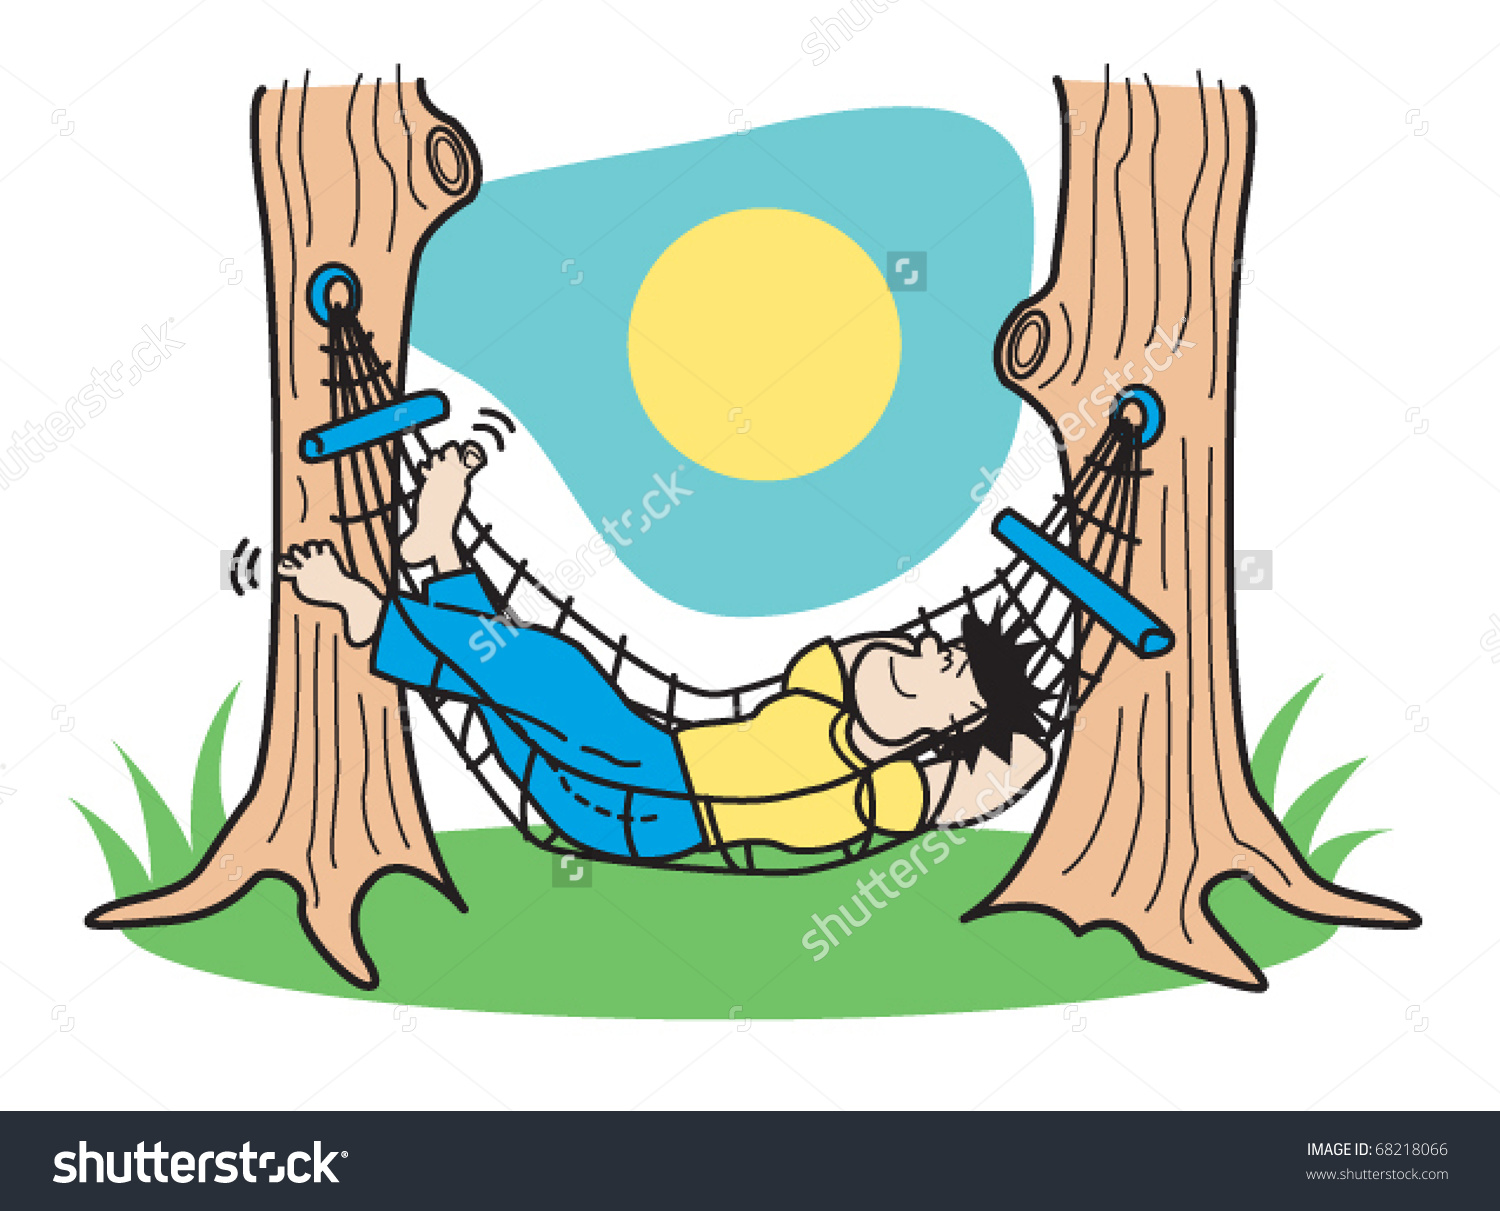 Lounging clipart - Clipground